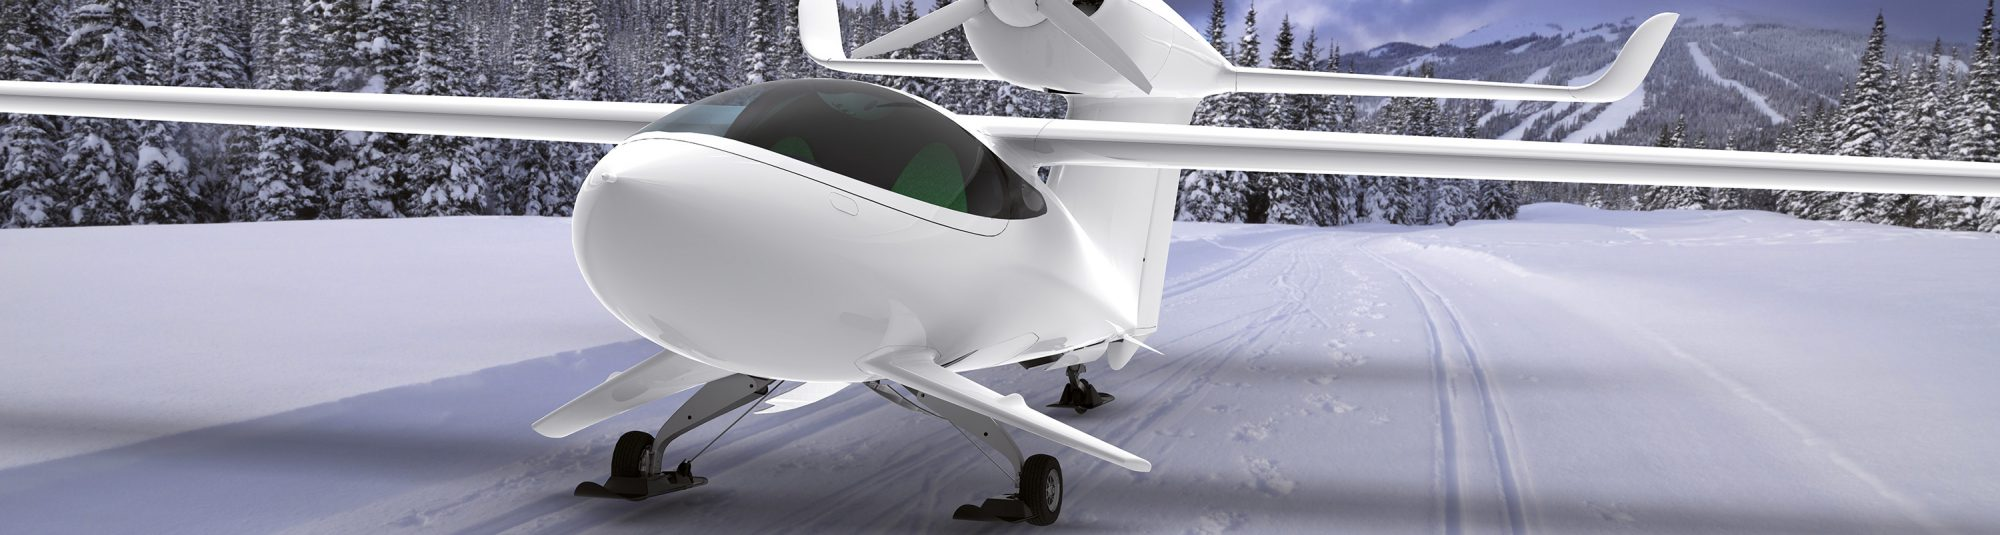 LISA Akoya aircraft skis-in technology on snow